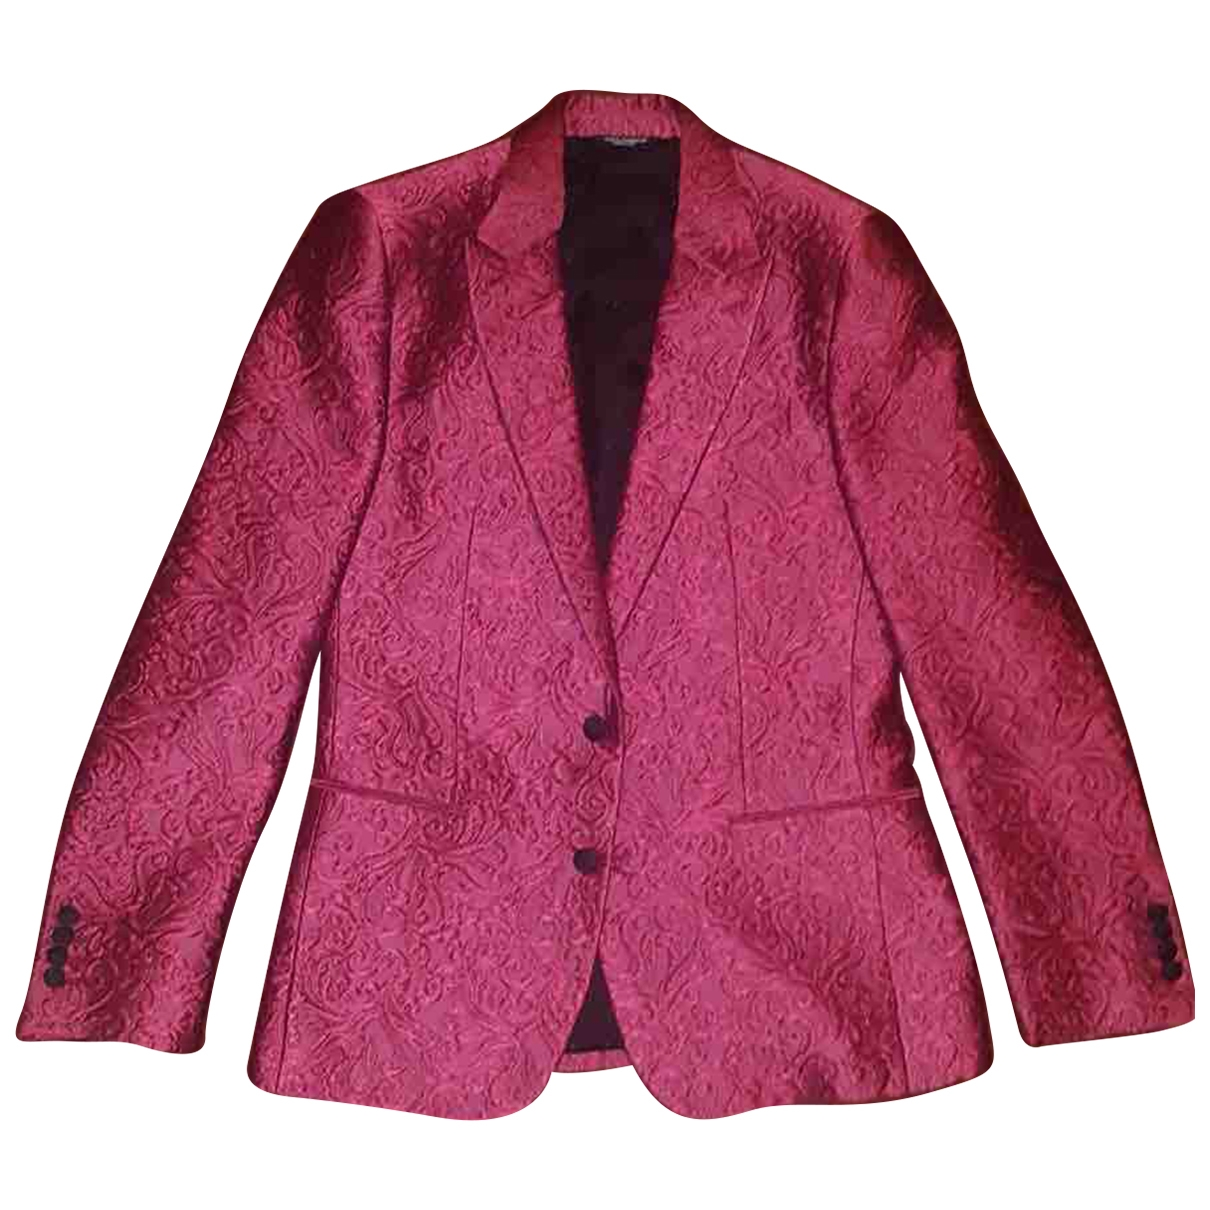 Dolce & Gabbana \N Anzuege in  Rosa Polyester